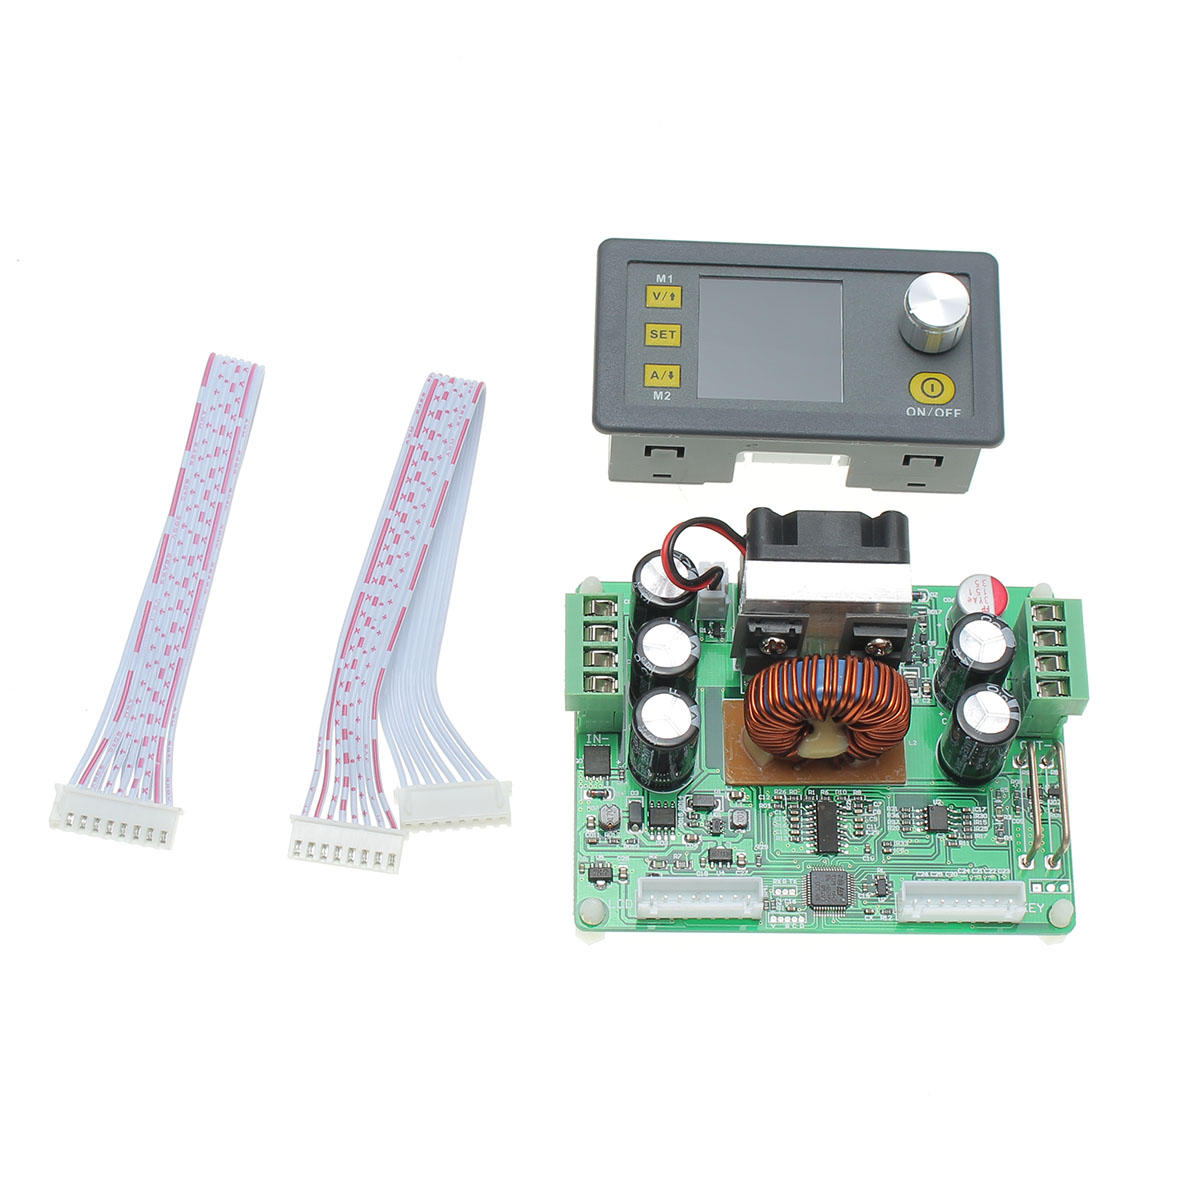 20pcs LM7809 DC/AC 12-24V to 9V DC Output Three Terminal Voltage Regulator Power Supply Step Down Module 1.2A - 2